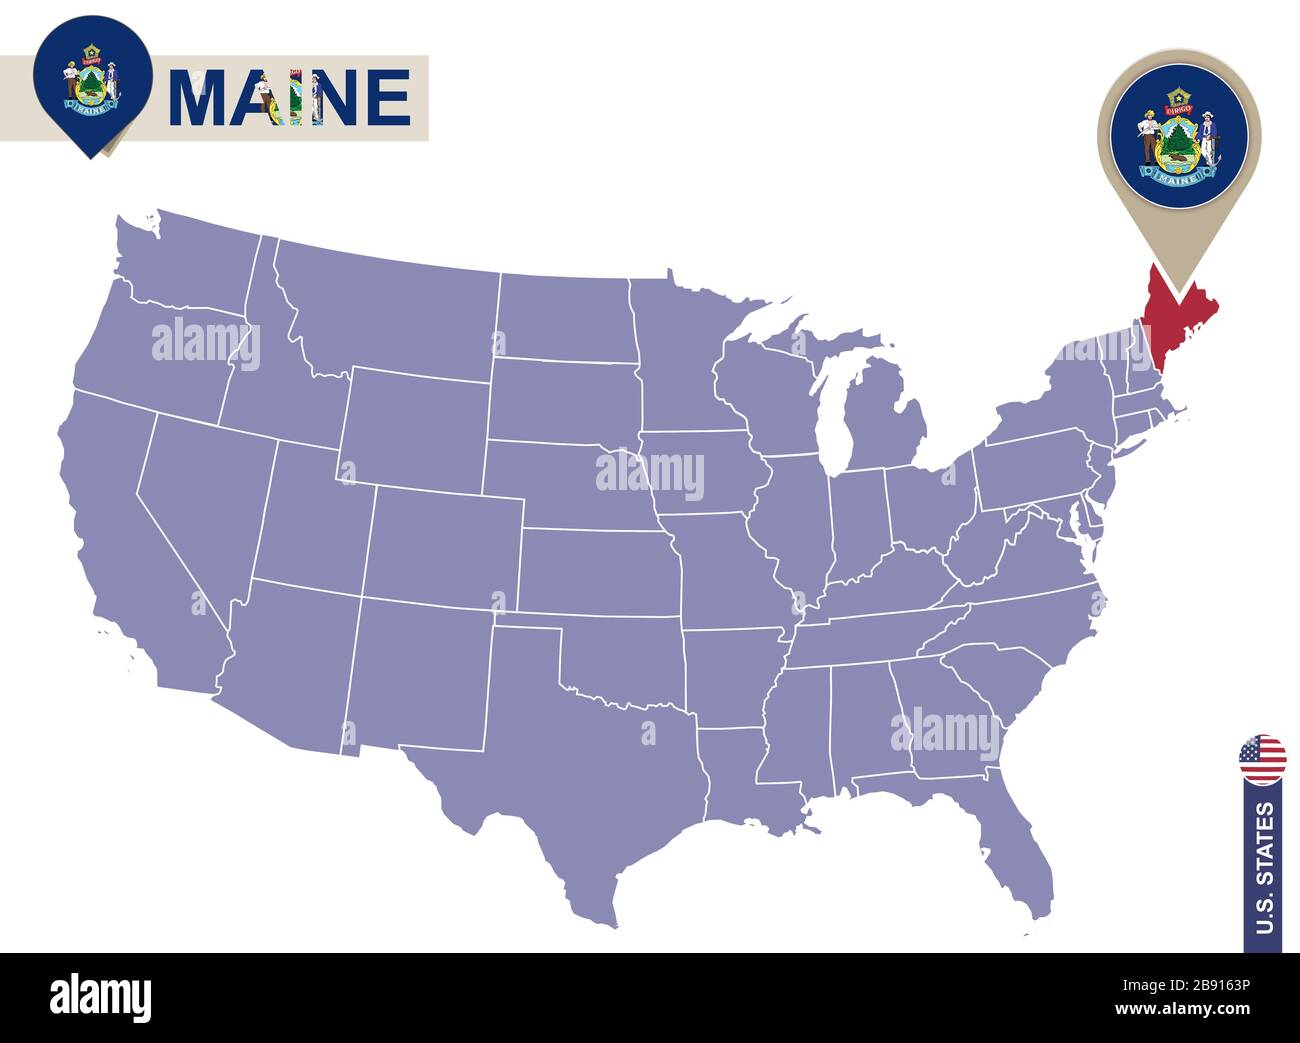 Maine State On Usa Map Maine Flag And Map Us States Stock Vector